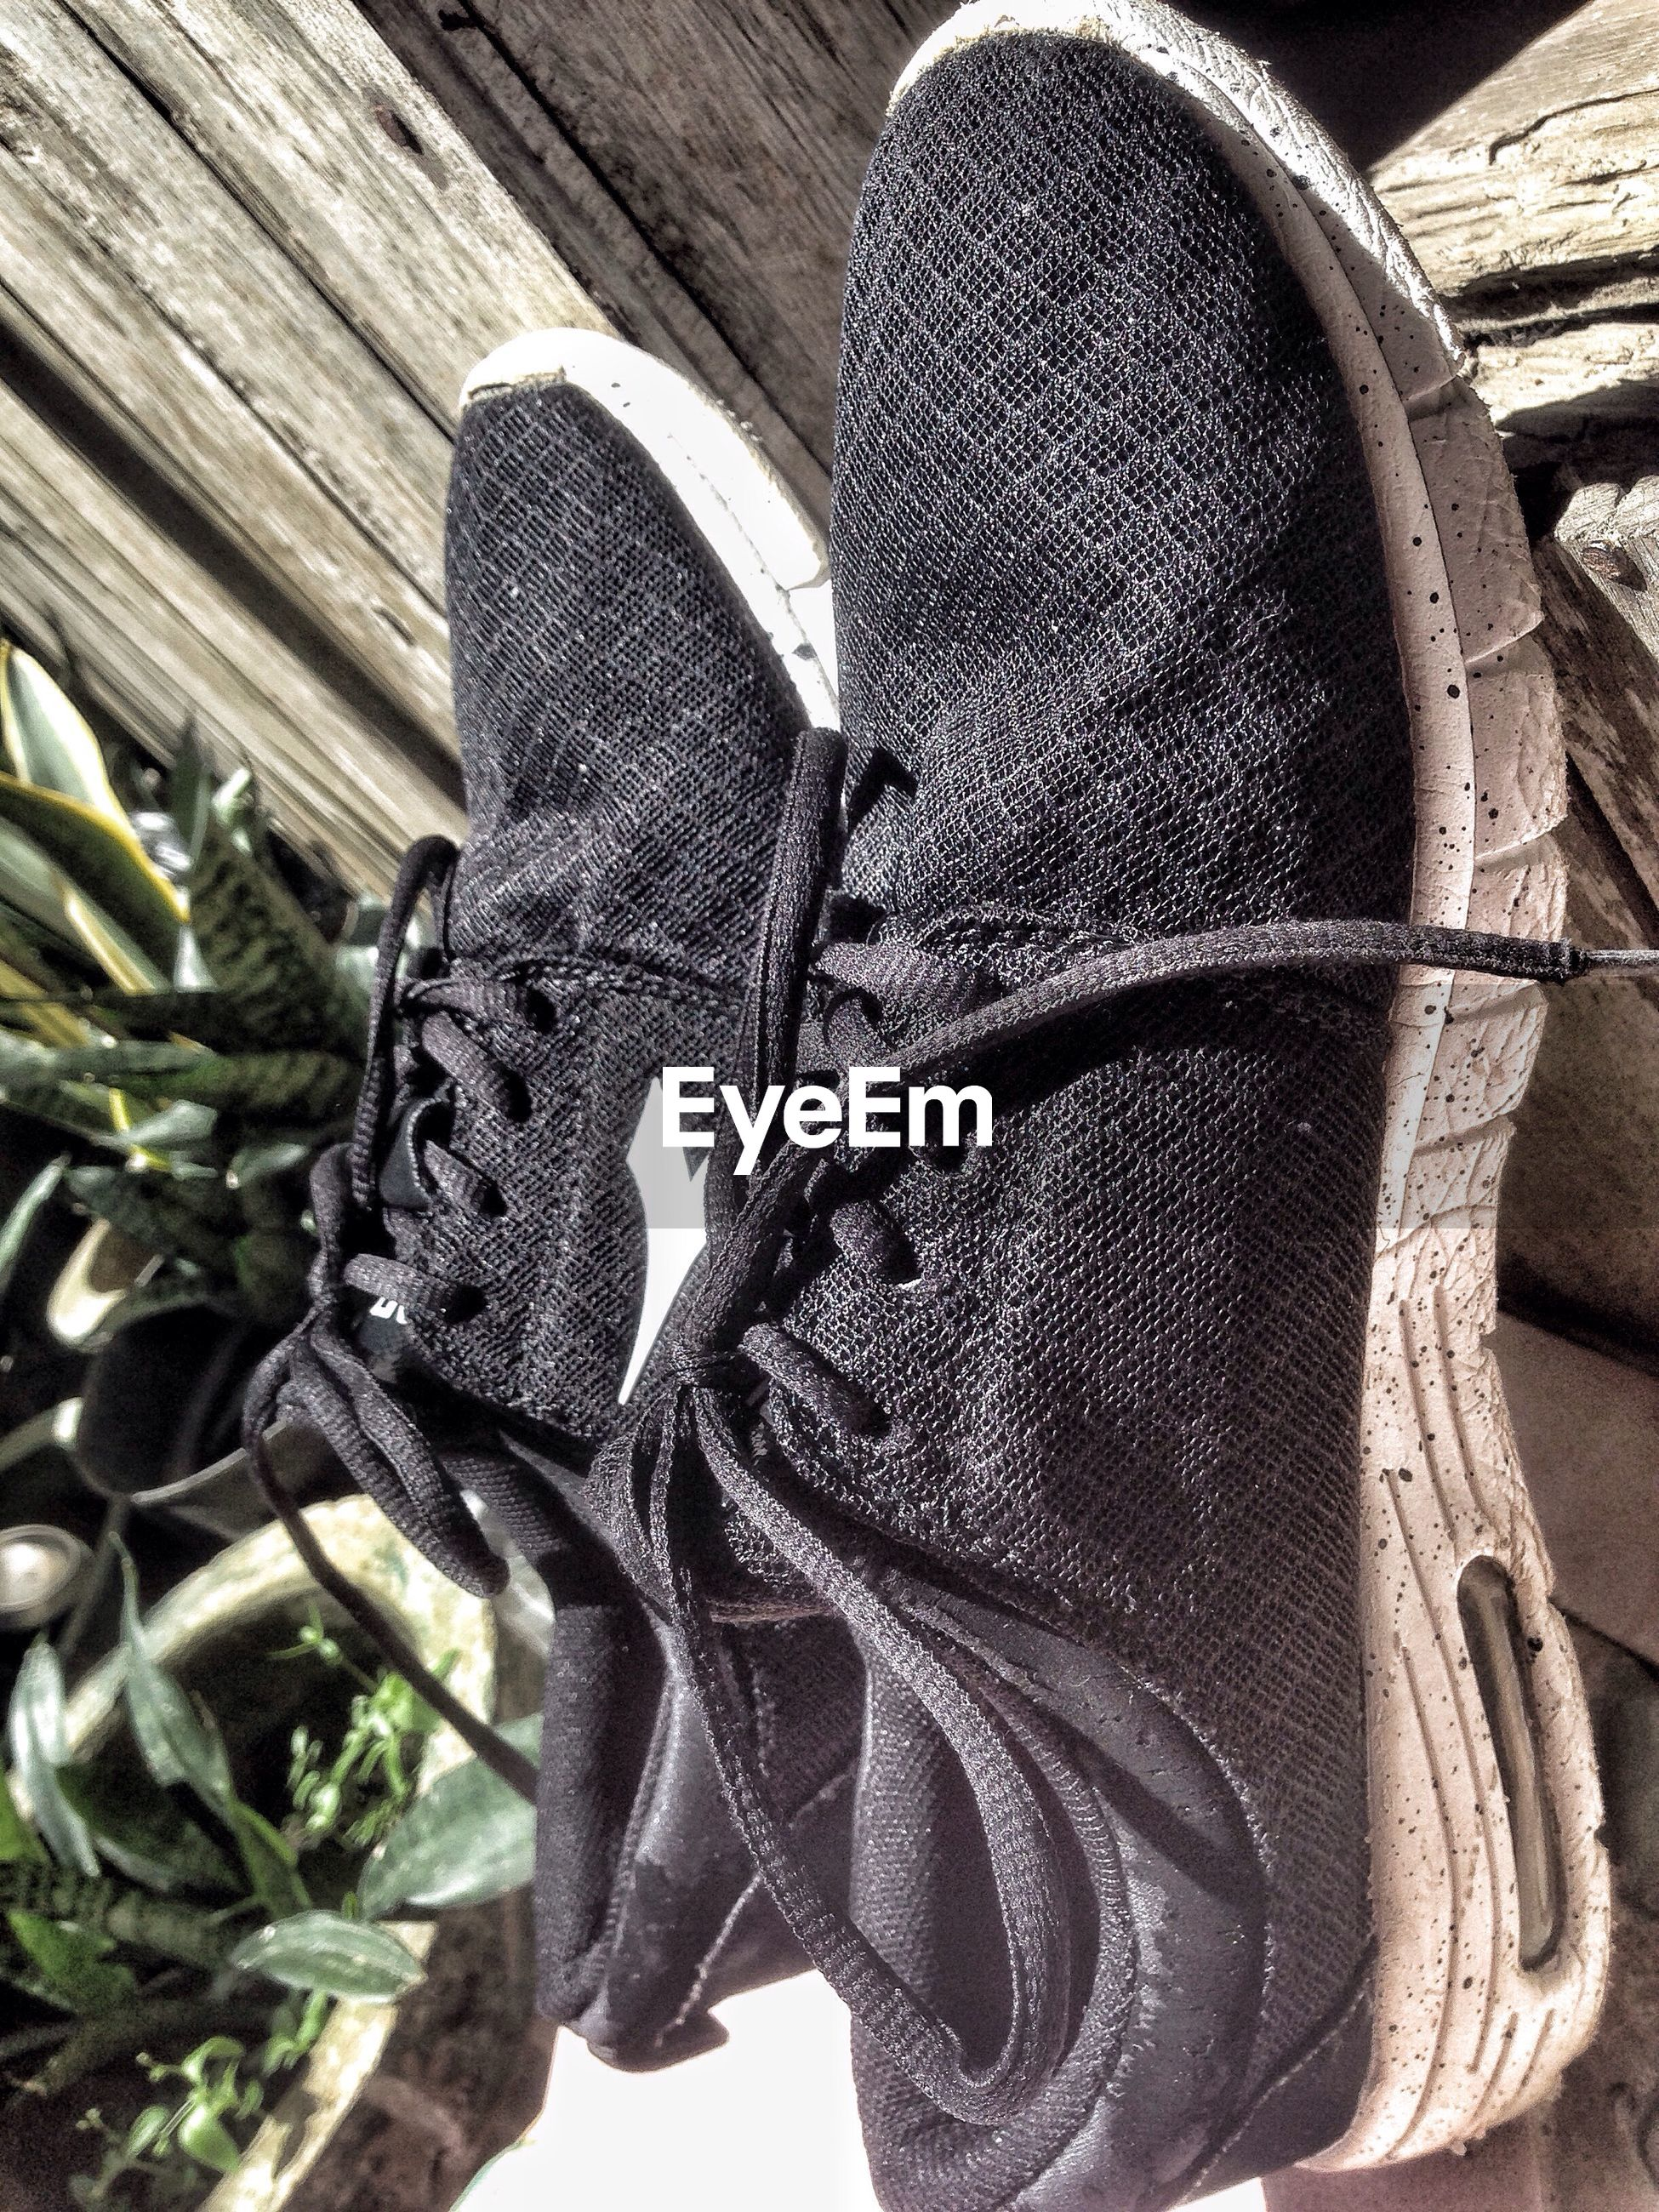 shoe, low section, high angle view, human foot, close-up, footwear, person, personal perspective